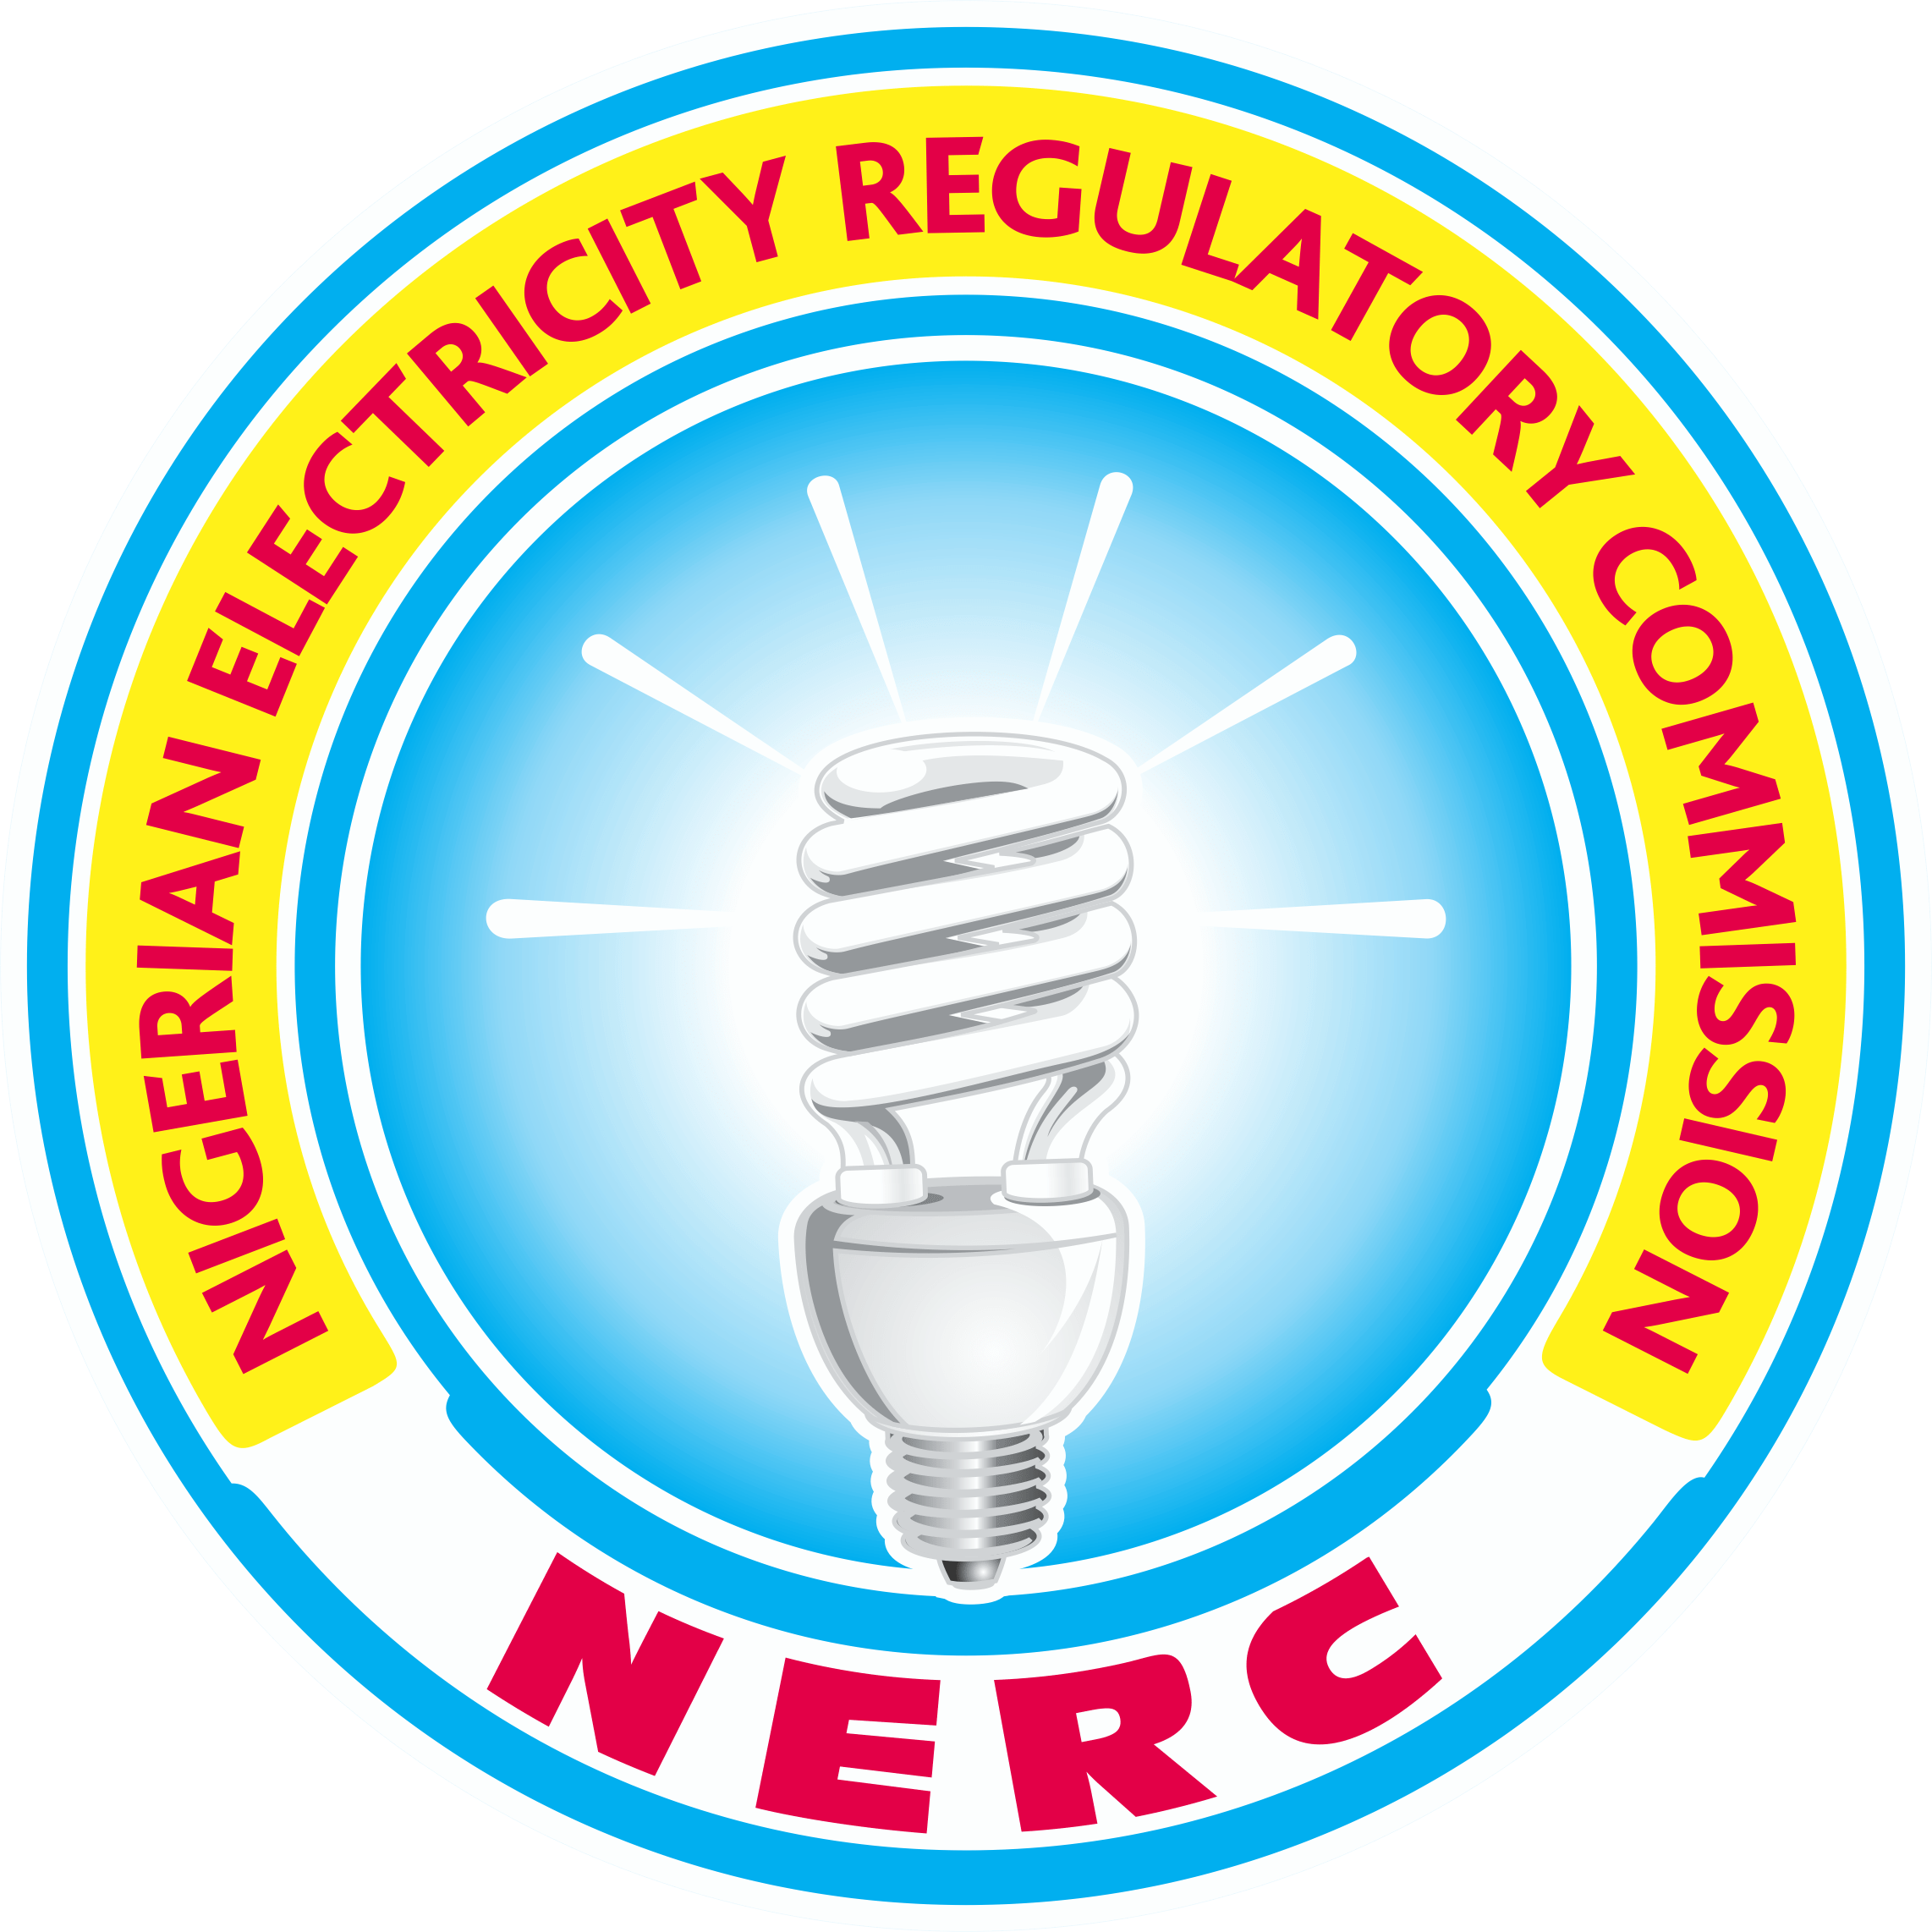 NERC Logo - NERC directs DisCos, MAPs to fast-track meter provision